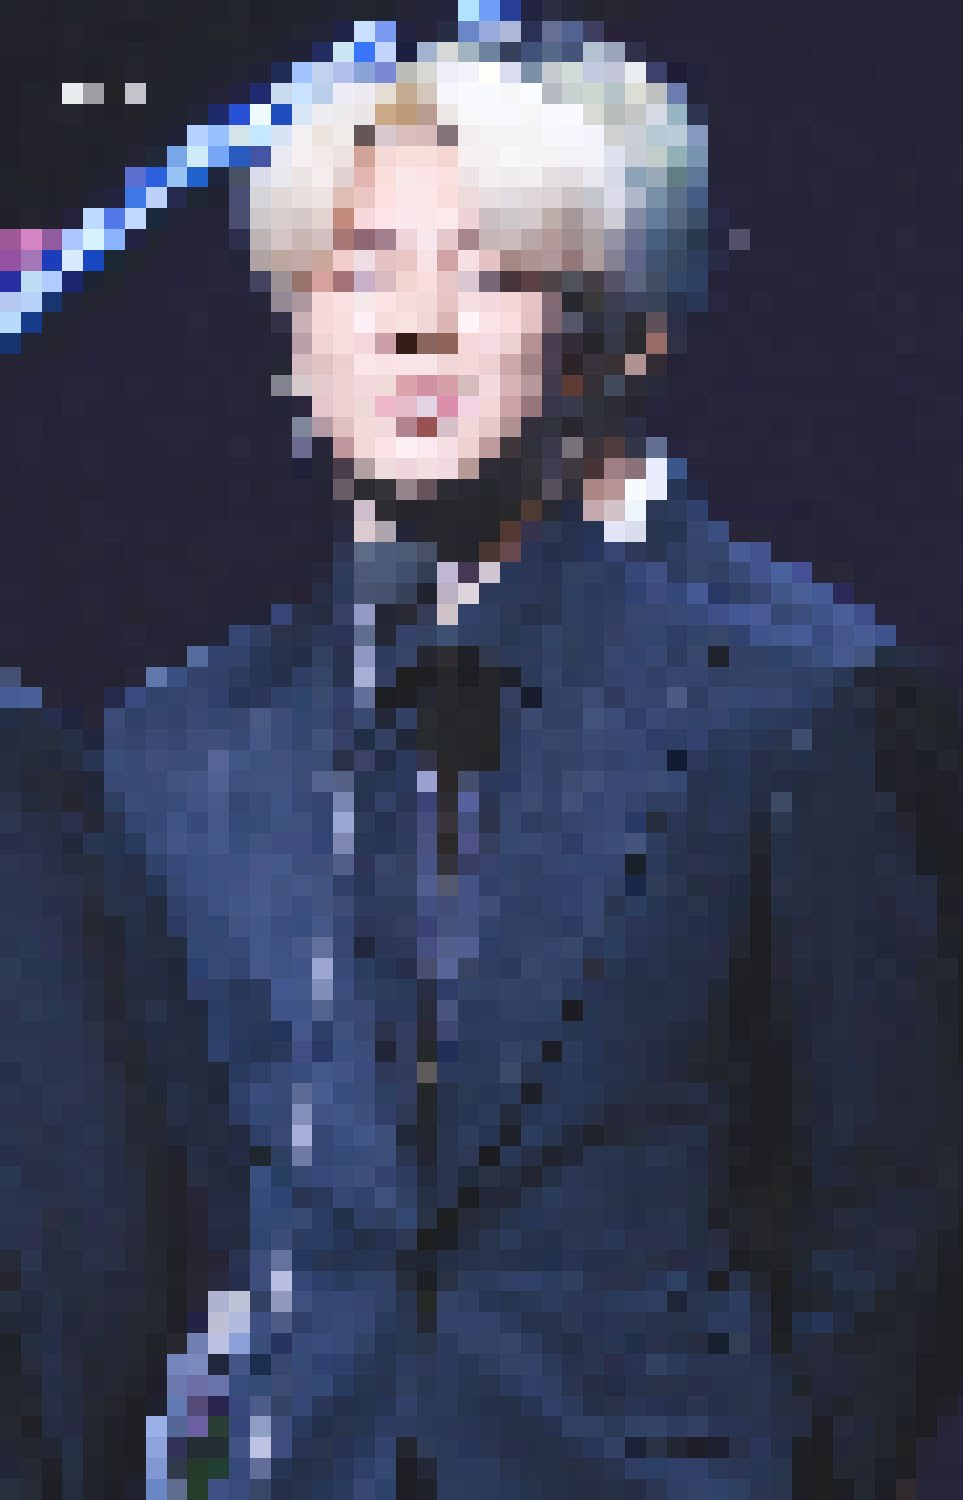 Test Your BTS Skills By Identifying The Members From These 20+ Pixelated Images